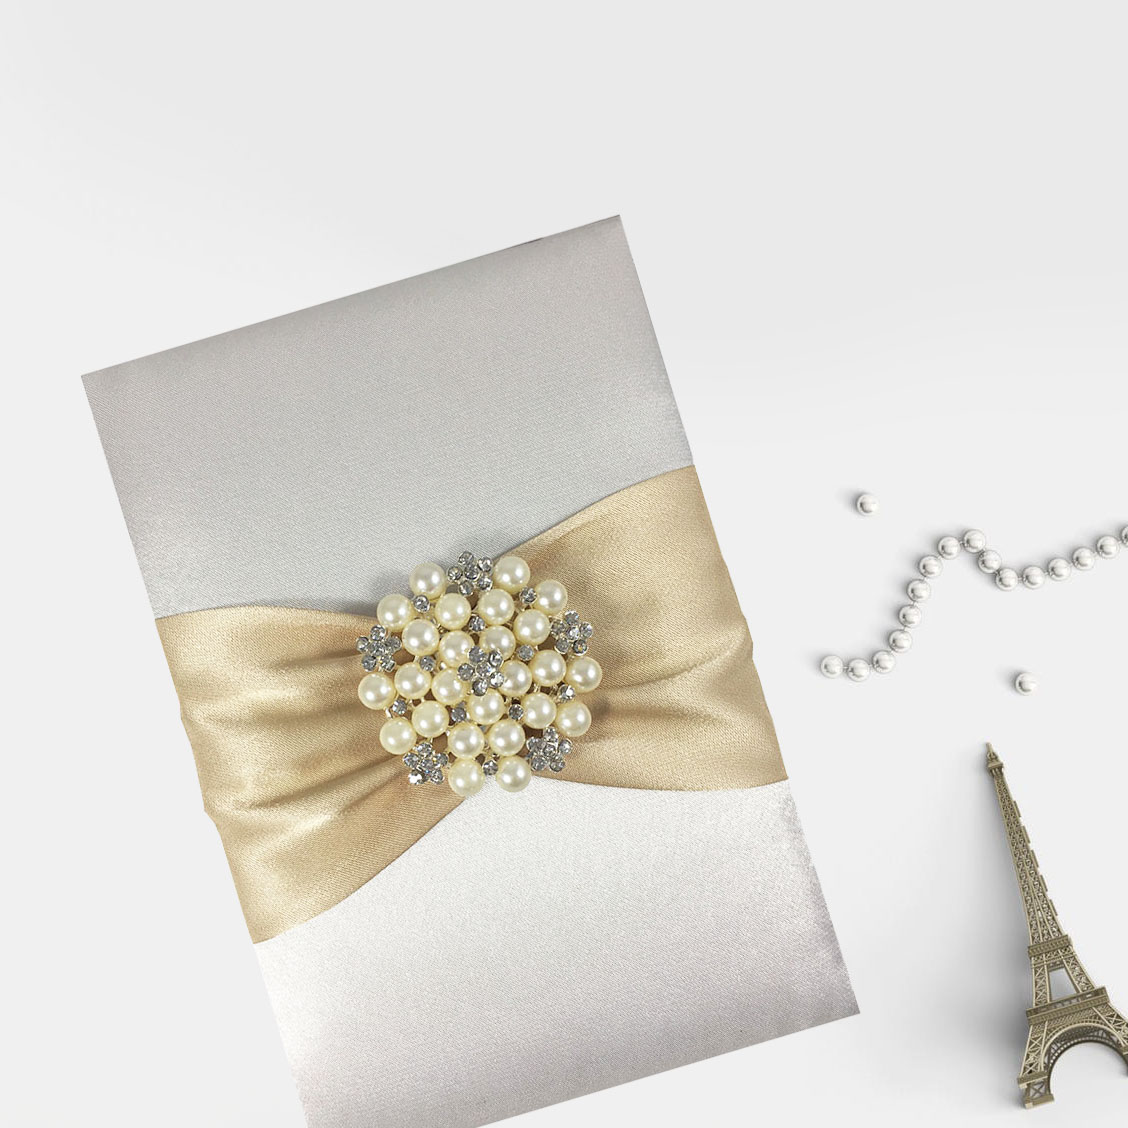 Pearl silk invitation design by Dennis Wisser